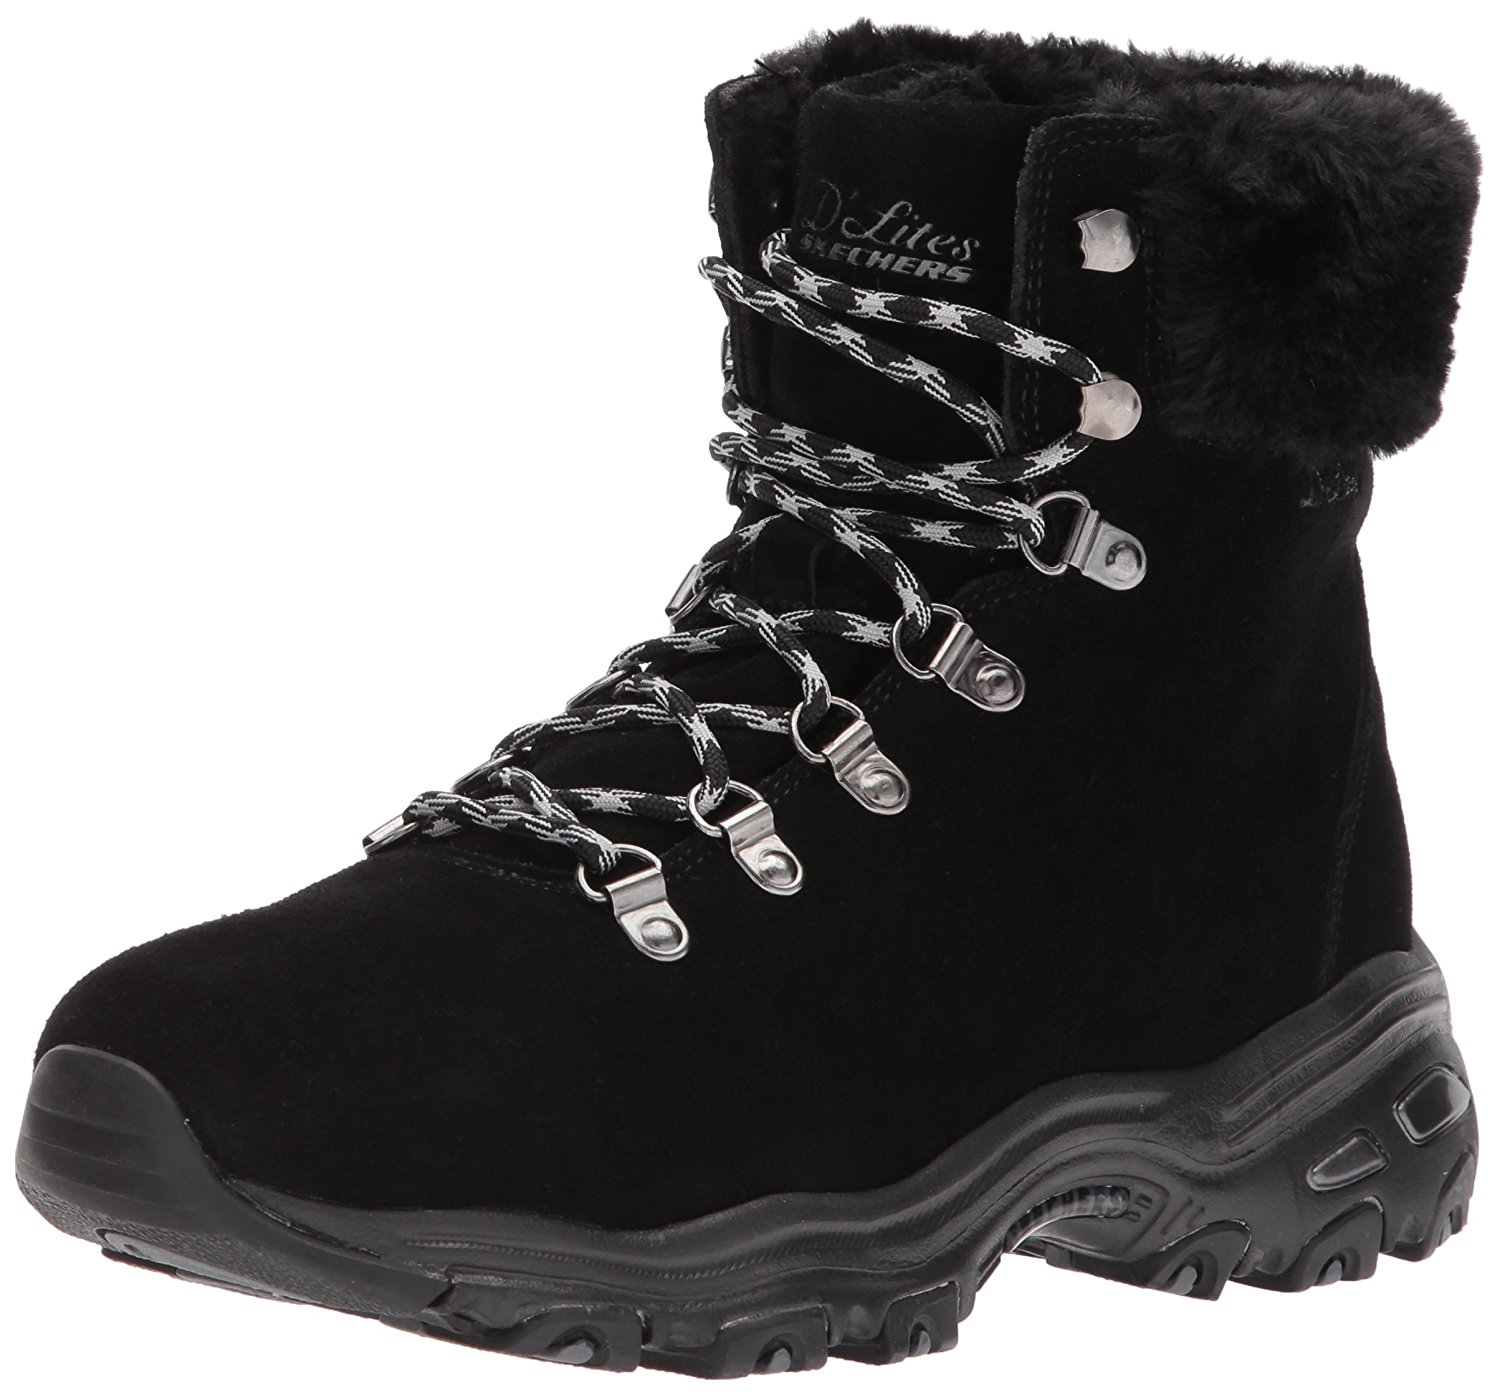 Brinley Co Women's Riana Ankle Boot Black Size 8.5 UJcg